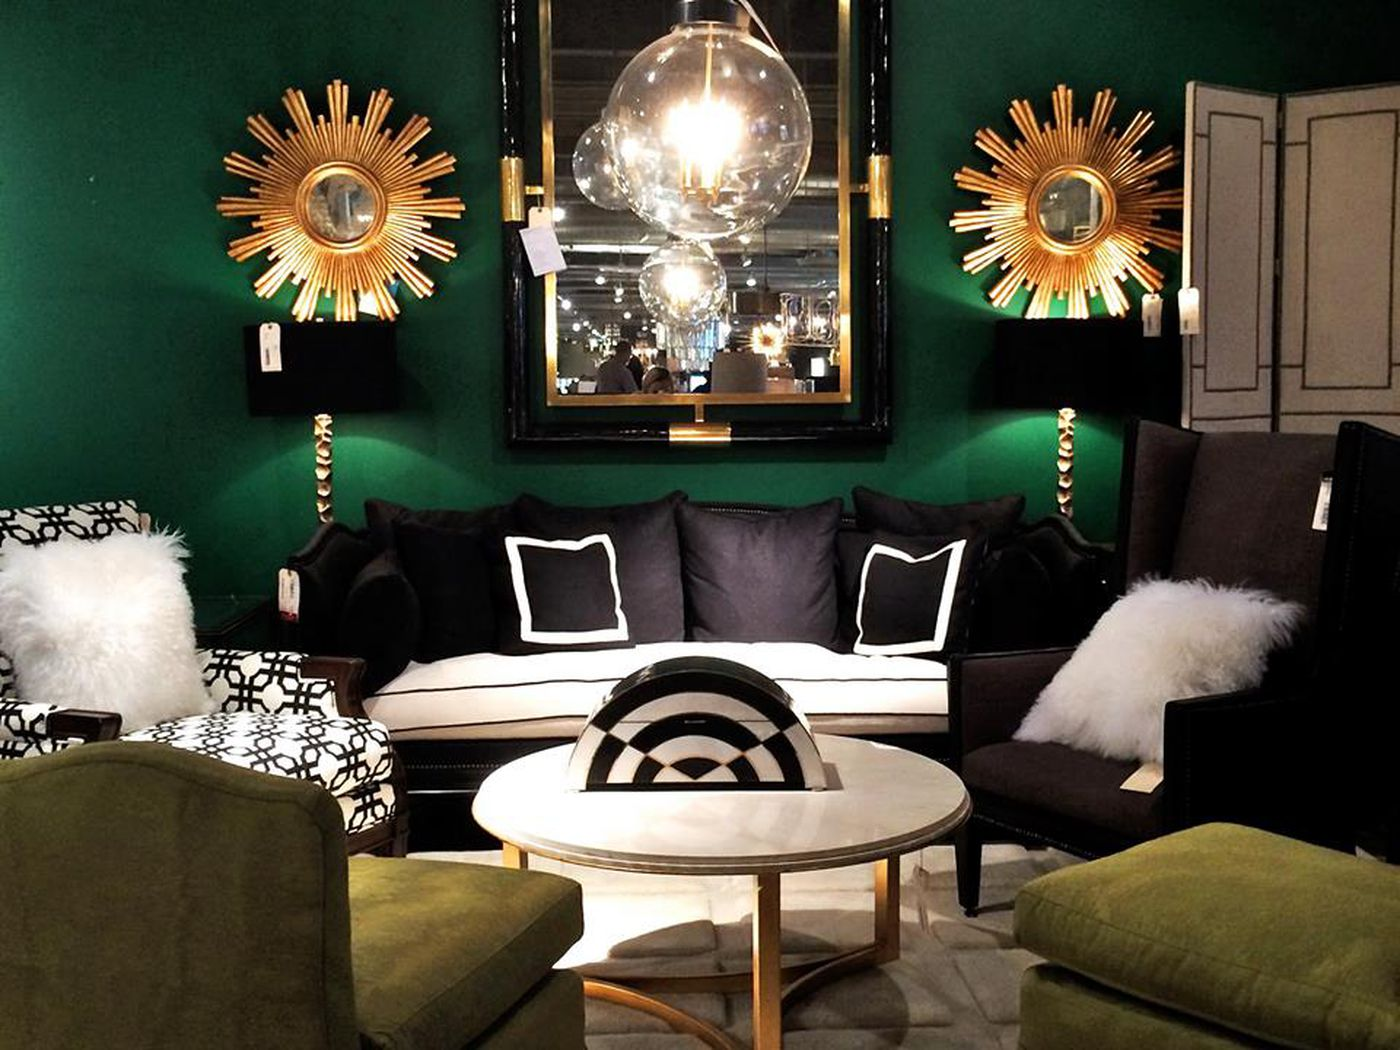 HD Buttercup39s Stylish Furniture and Decor Pop Up in Santa Monica